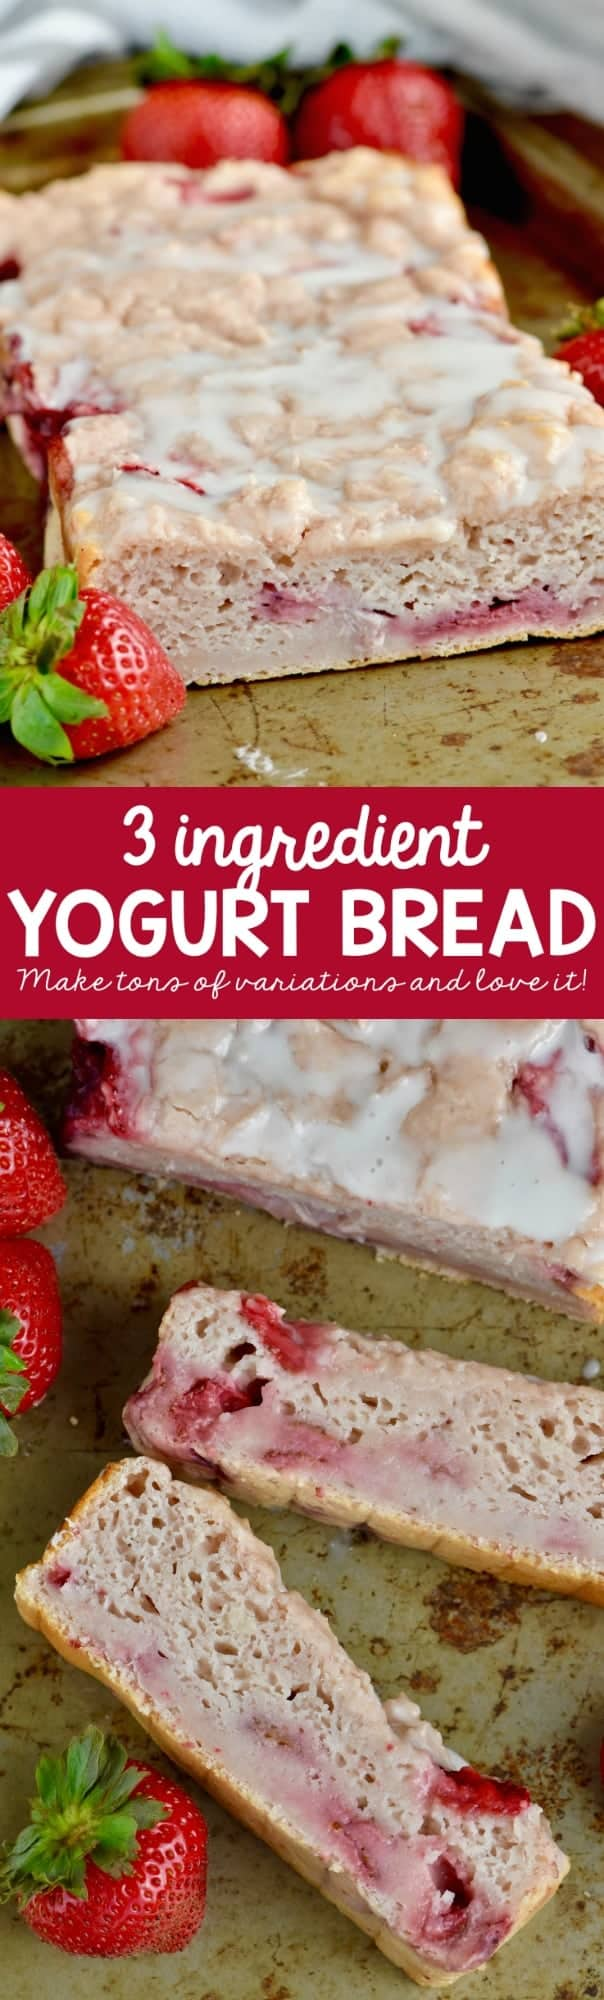 The Three Ingredient Yogurt Bread has a little slice gone and topped with a simple icing.